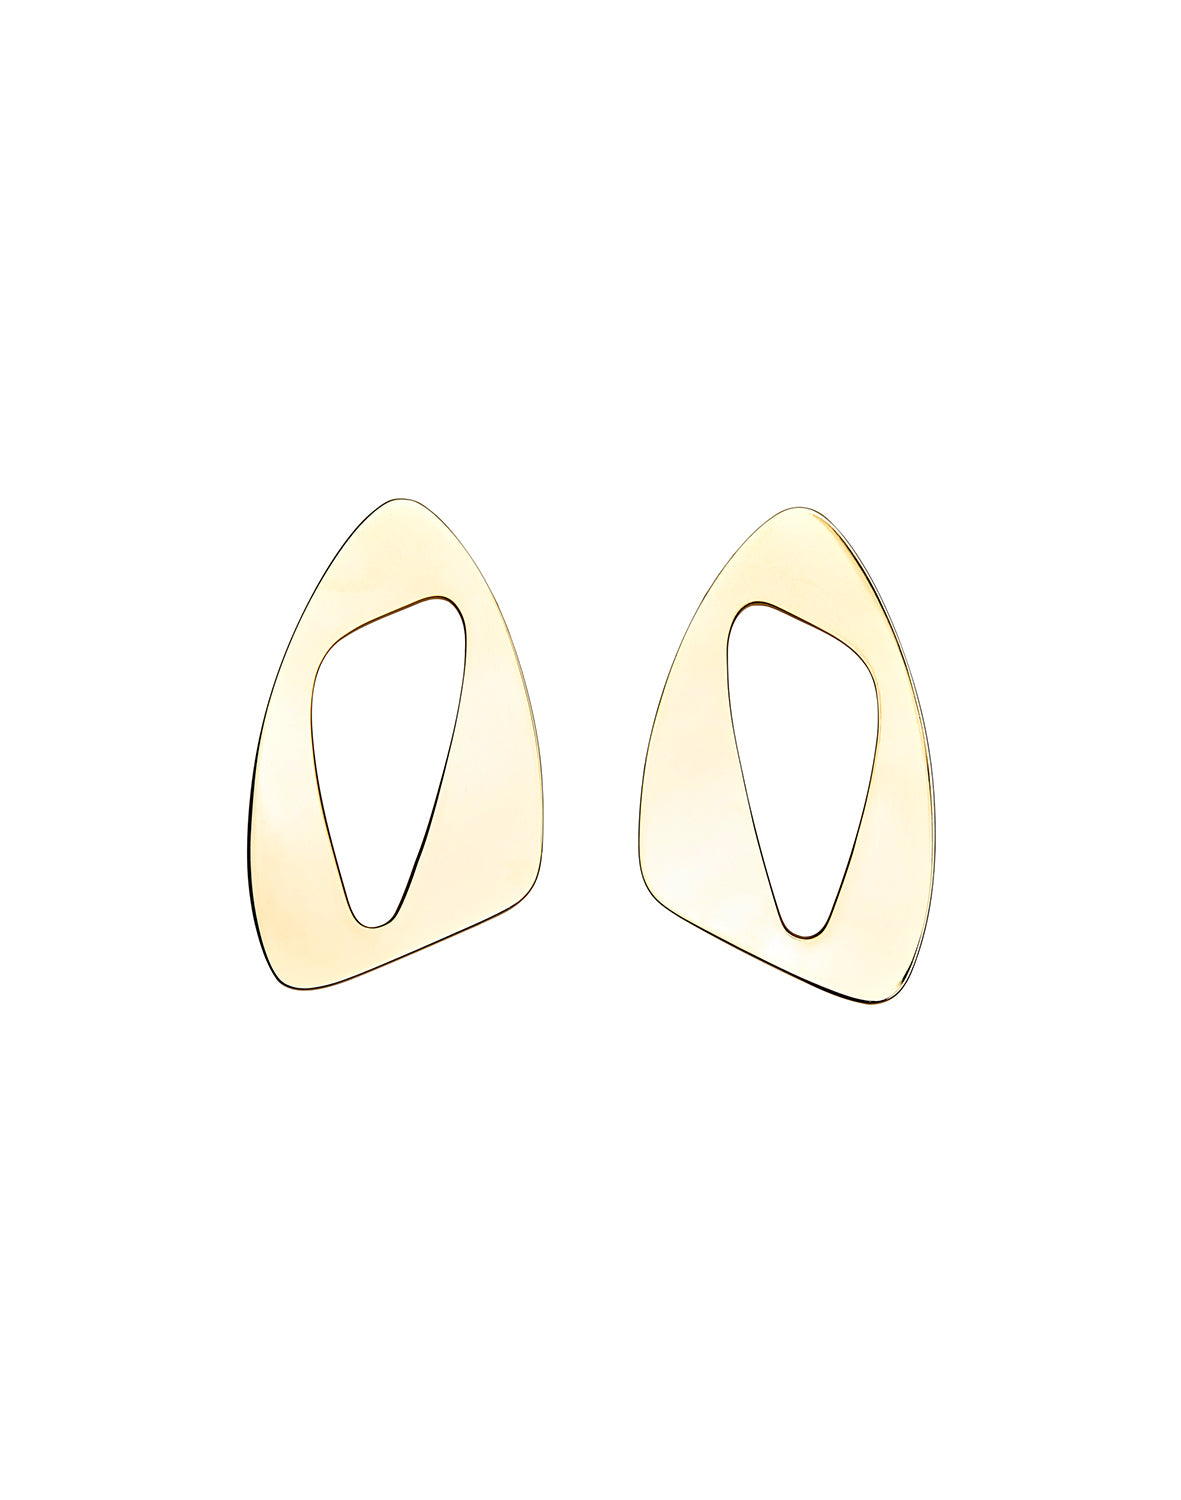 Amorphous Extruded Earrings